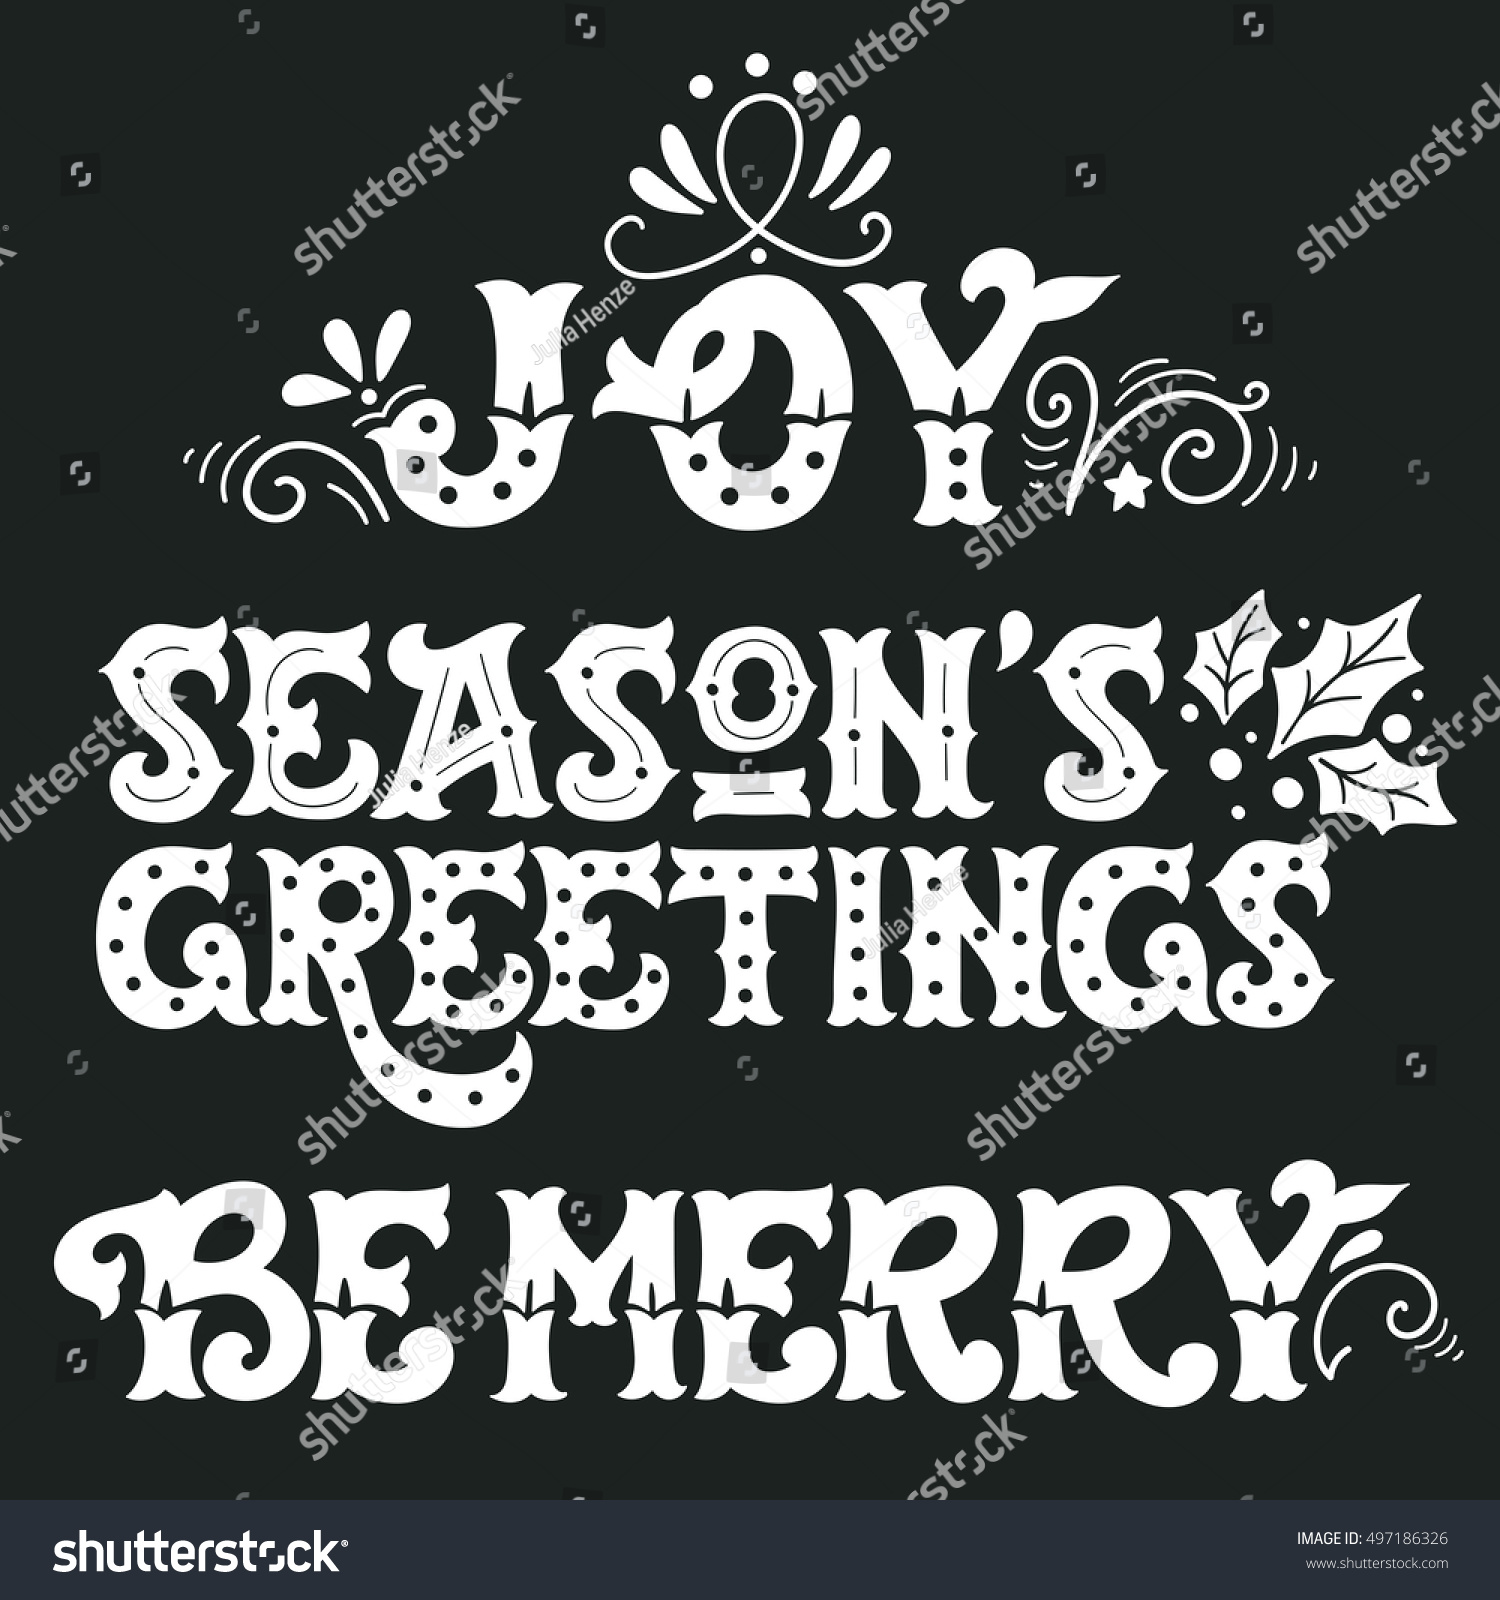 Joy Seasons Greetings Be Merry Collection Of Hand Drawn Winter